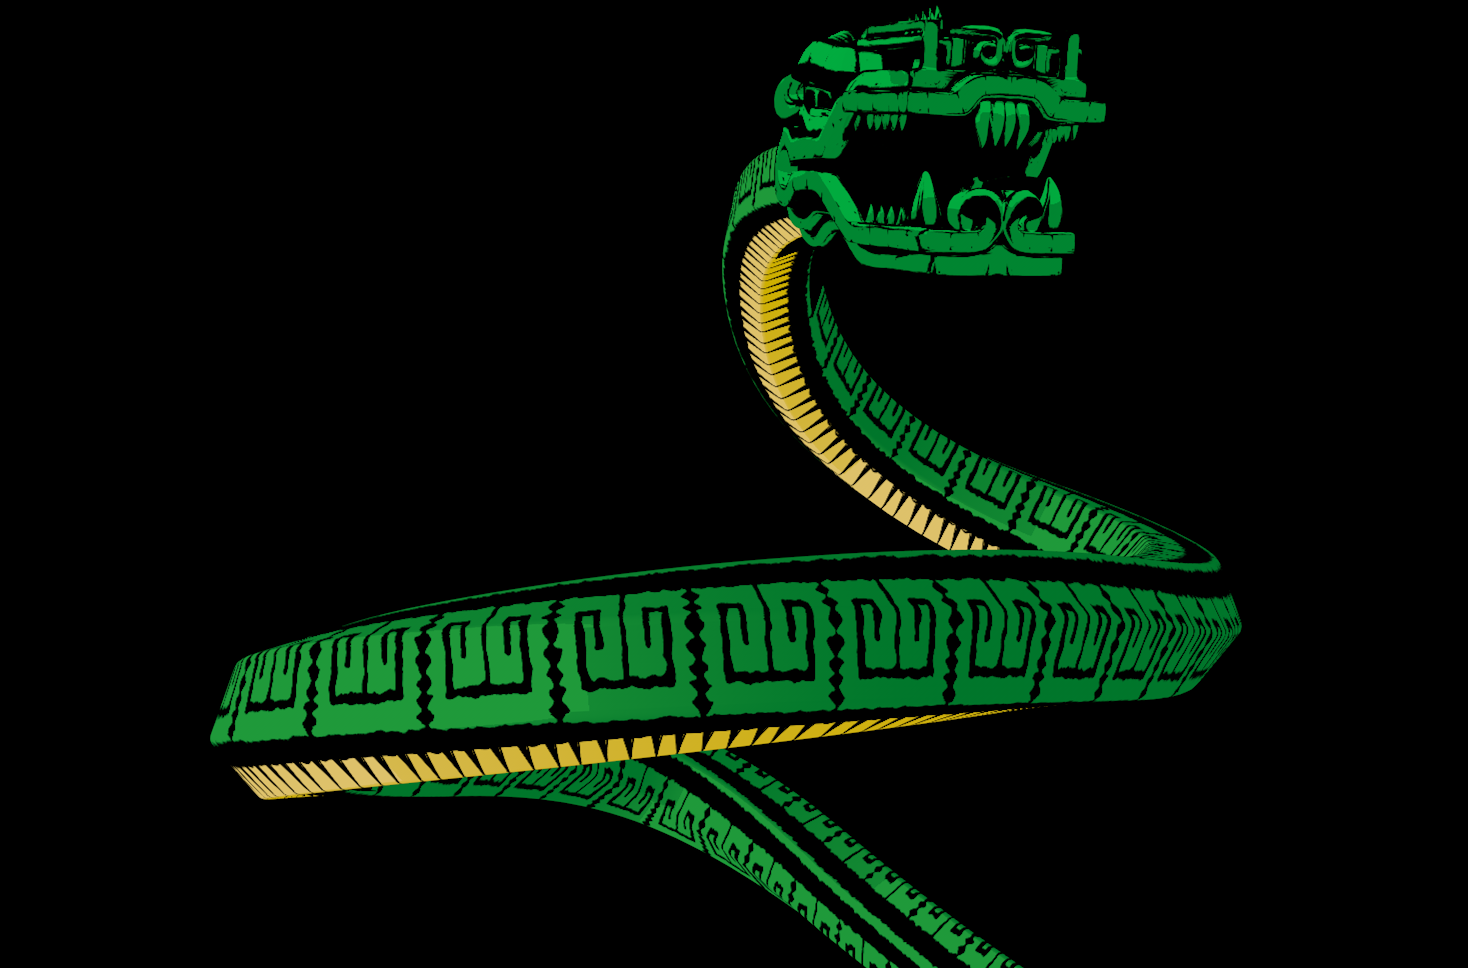 Final Quetzalcoatl Design